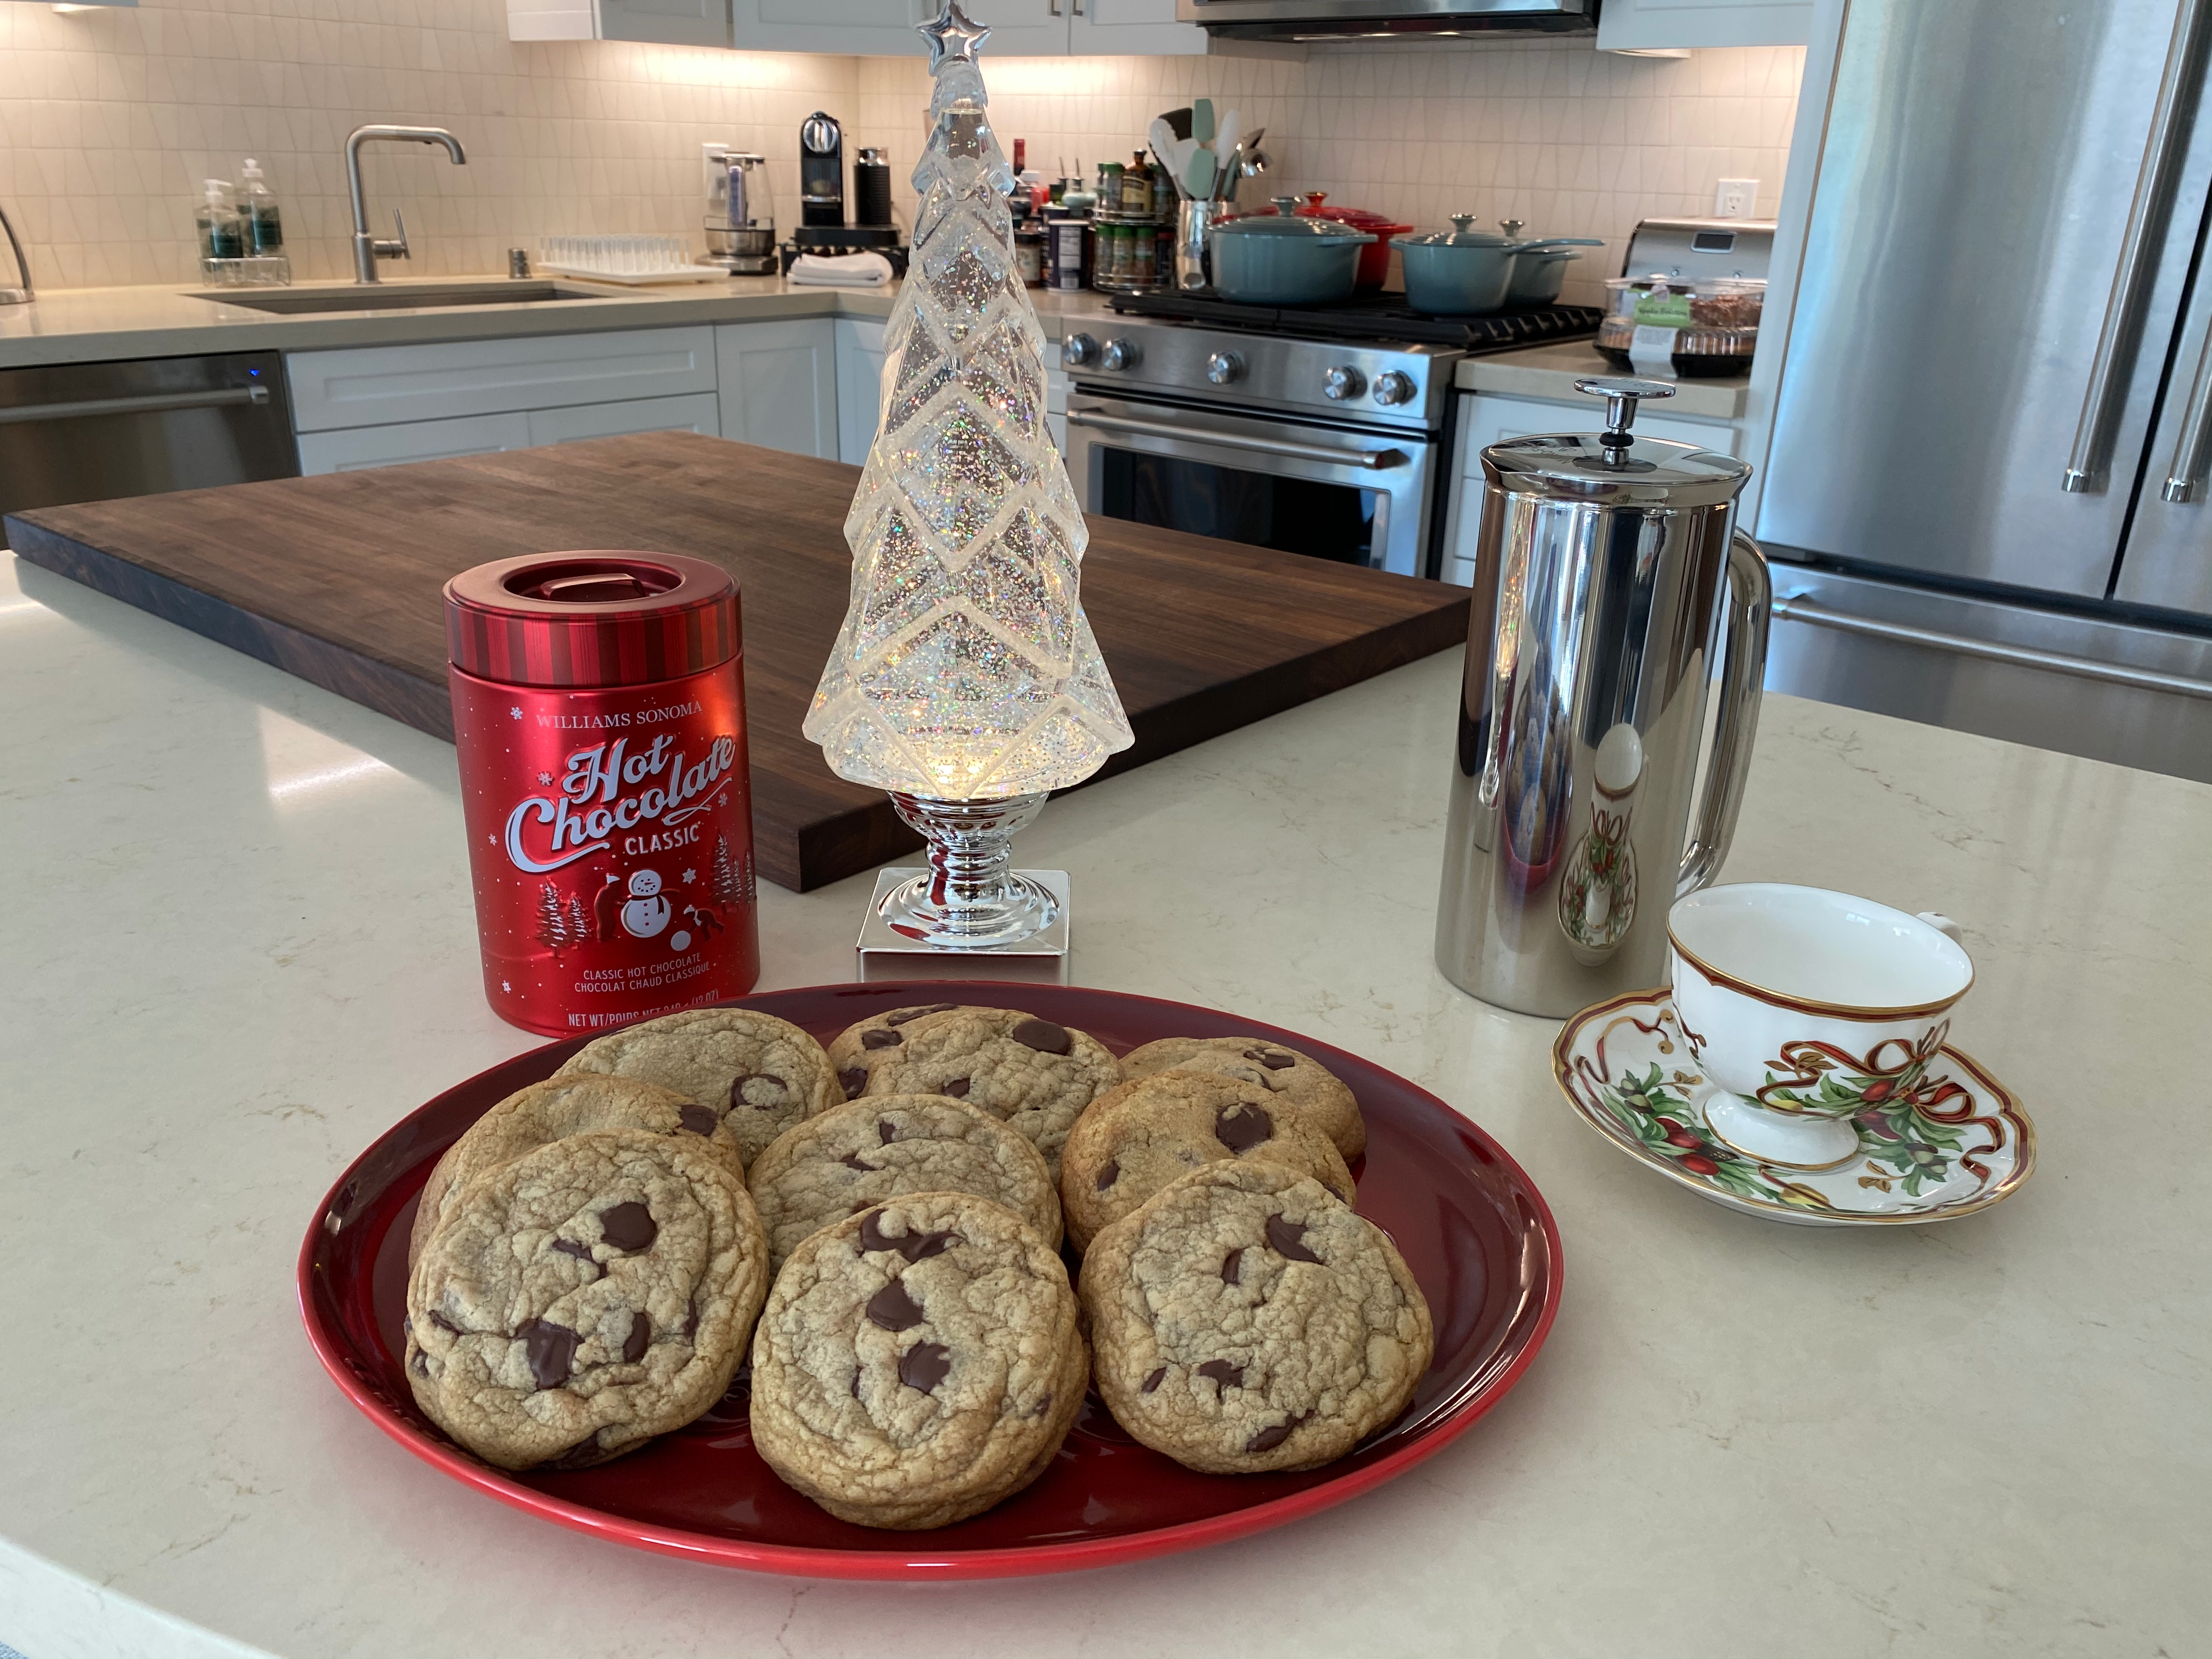 Waking Up to Aaron's Chocolate Chip Cookies with Guittard Chocolate